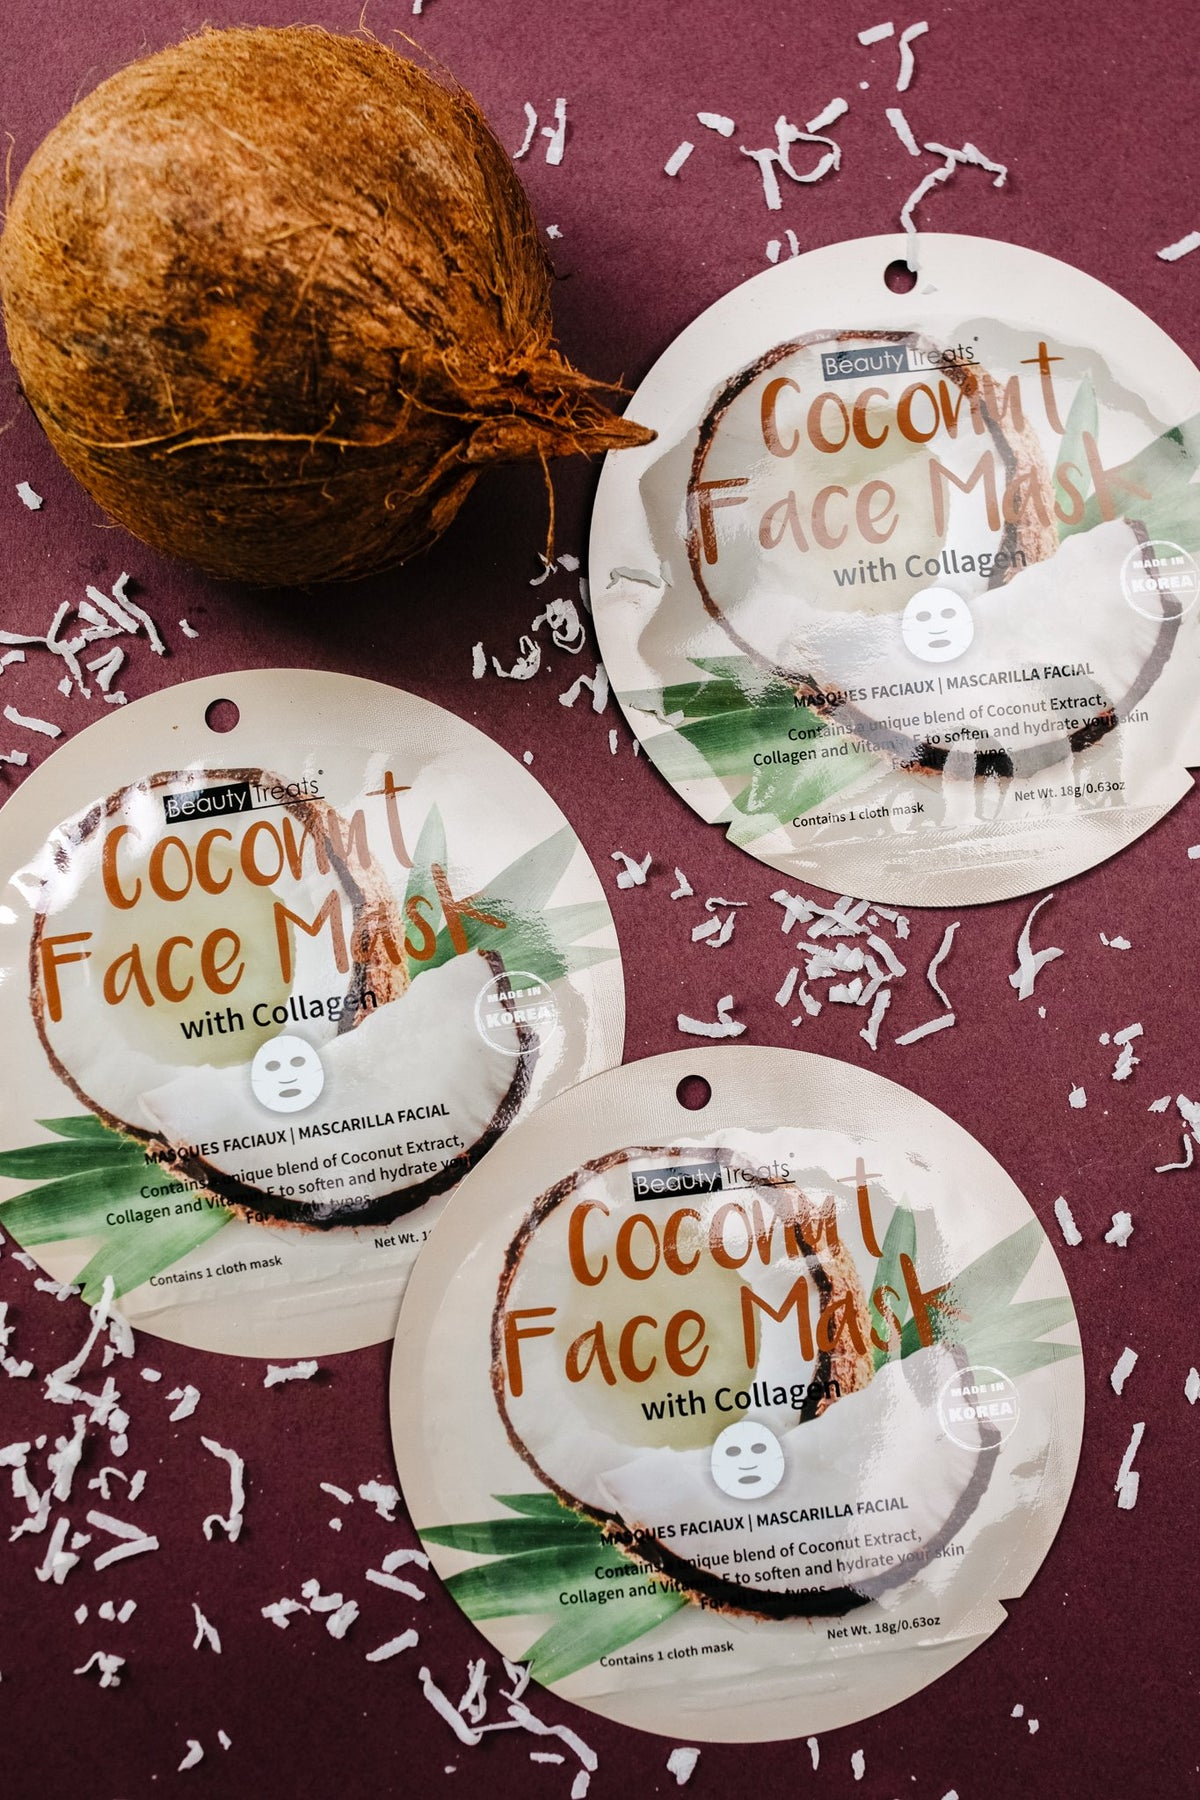 Time for You Face Mask in Coconut